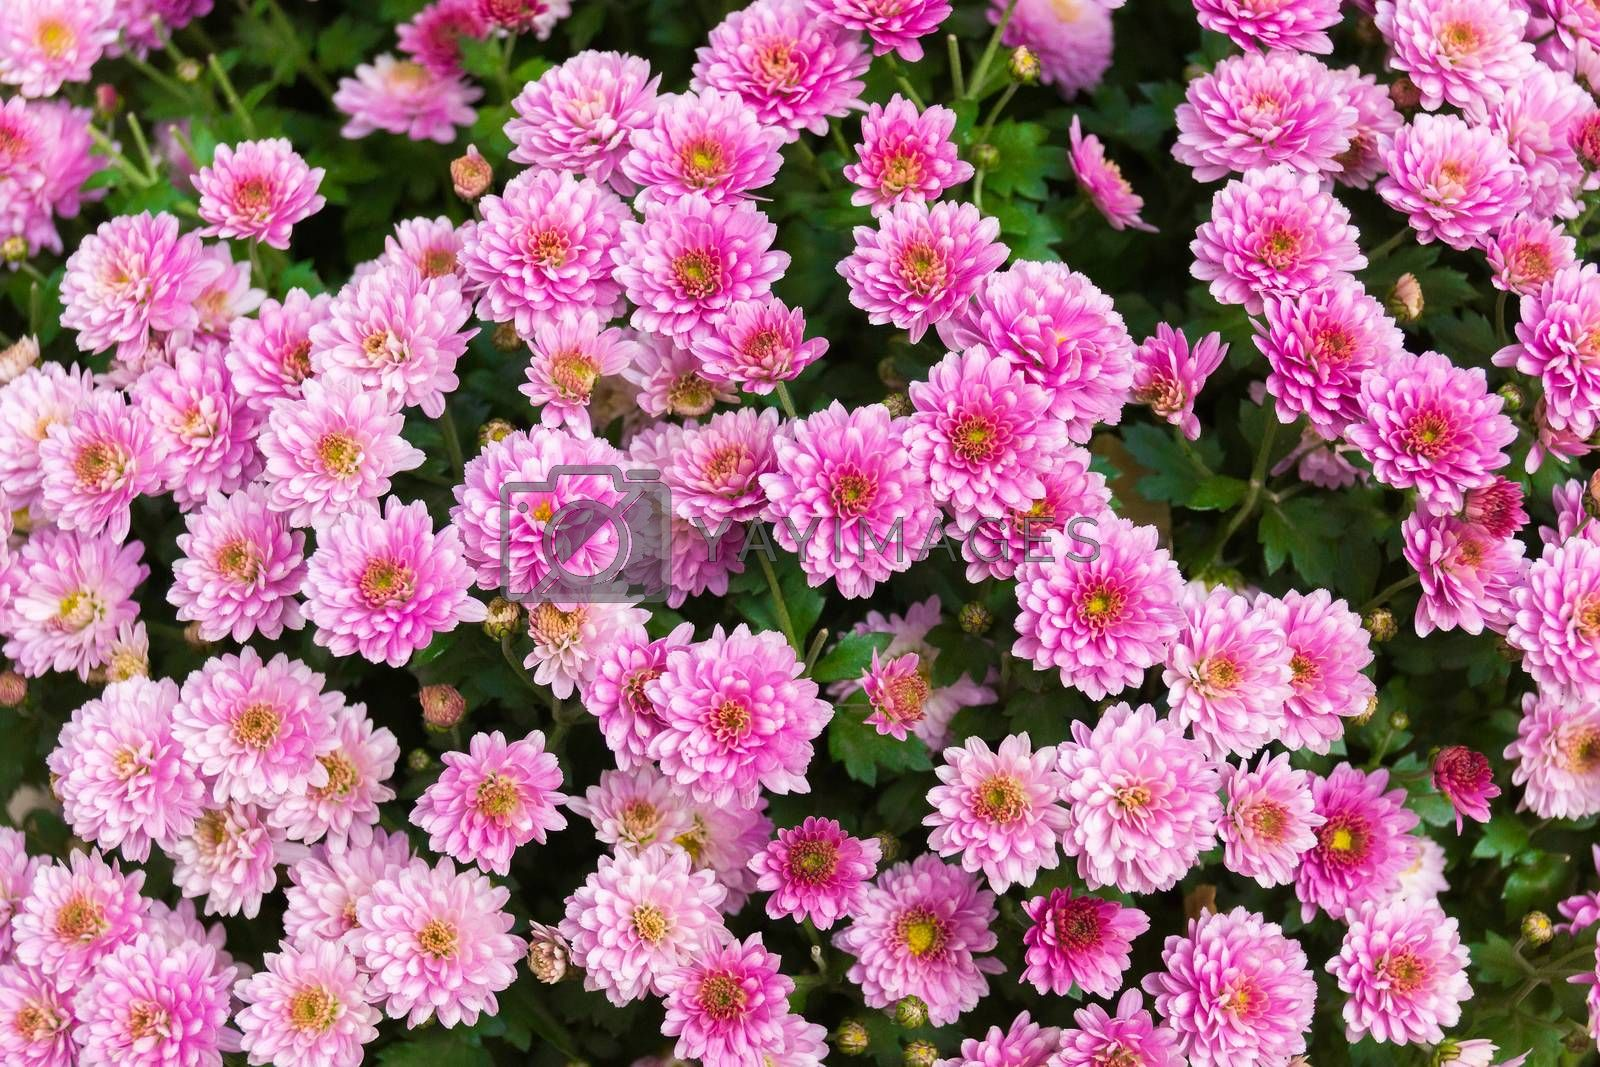 The photo shows flowers in the flowerbed